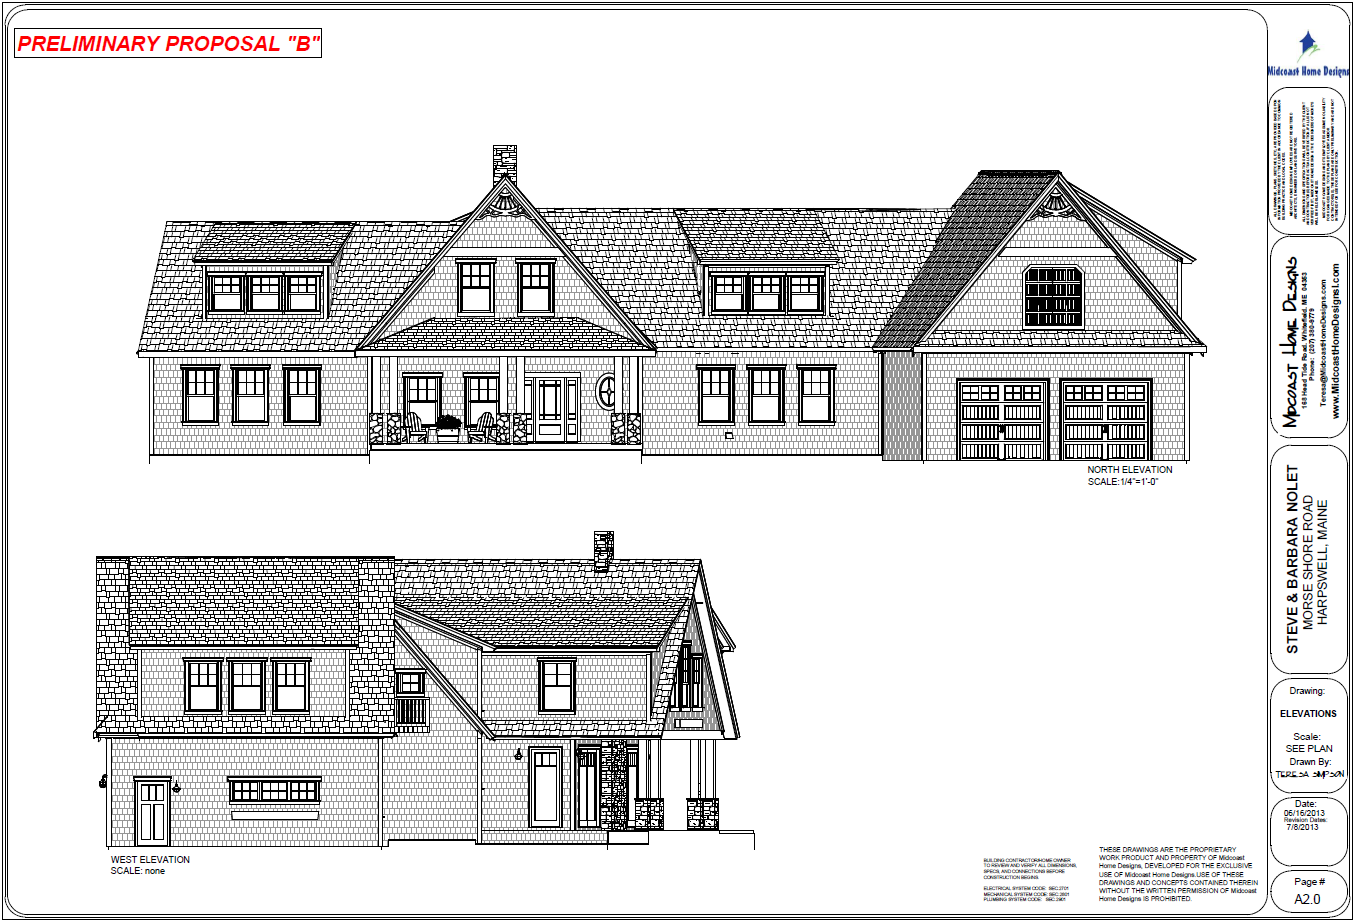 Nolet elevations for Midcoast home designs